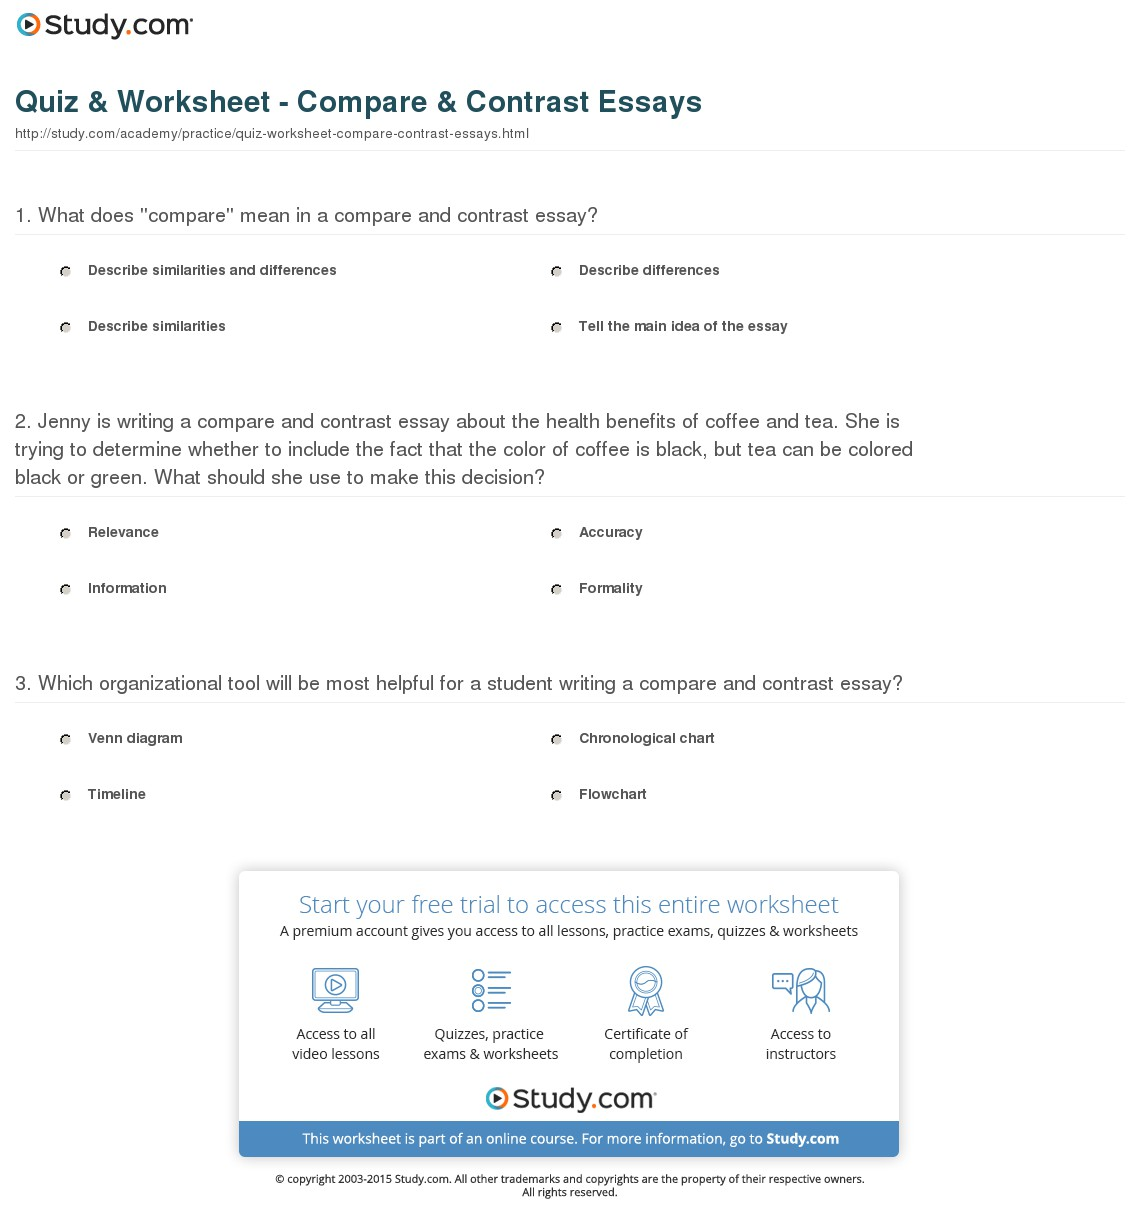 015 Essay Example Compare And Contrast Quiz Worksheet Frightening Prompts 5th Grade Rubric College Ideas 12th